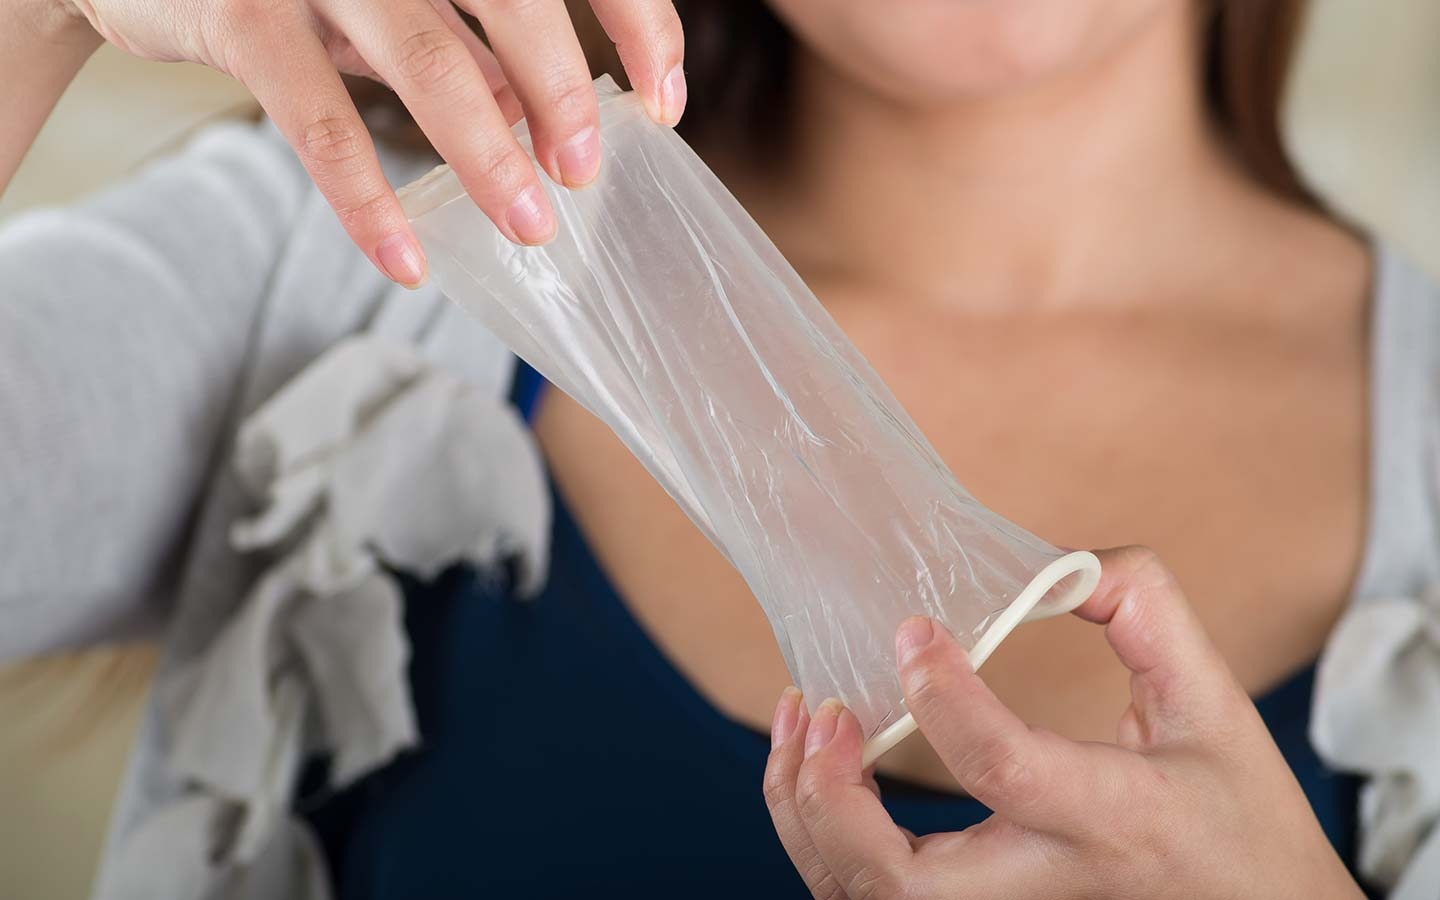 Some of the interesting ways to use a female condom